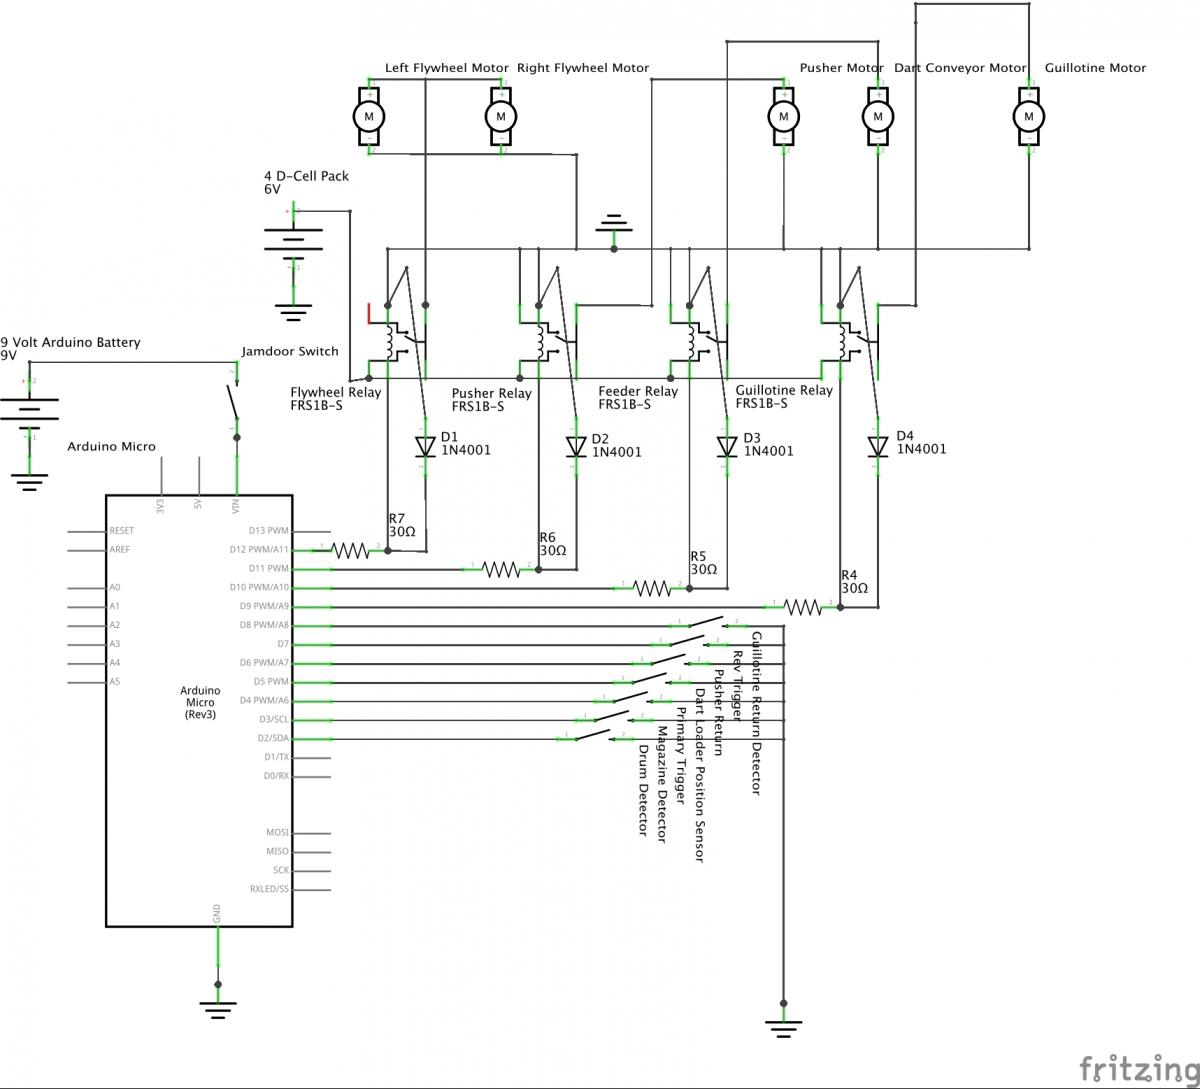 gryphon wiring diagram 2005 chevy 2500 roof light wiring diagram infinus inspired by tr-27 gryphon/rs mod - modifications ...